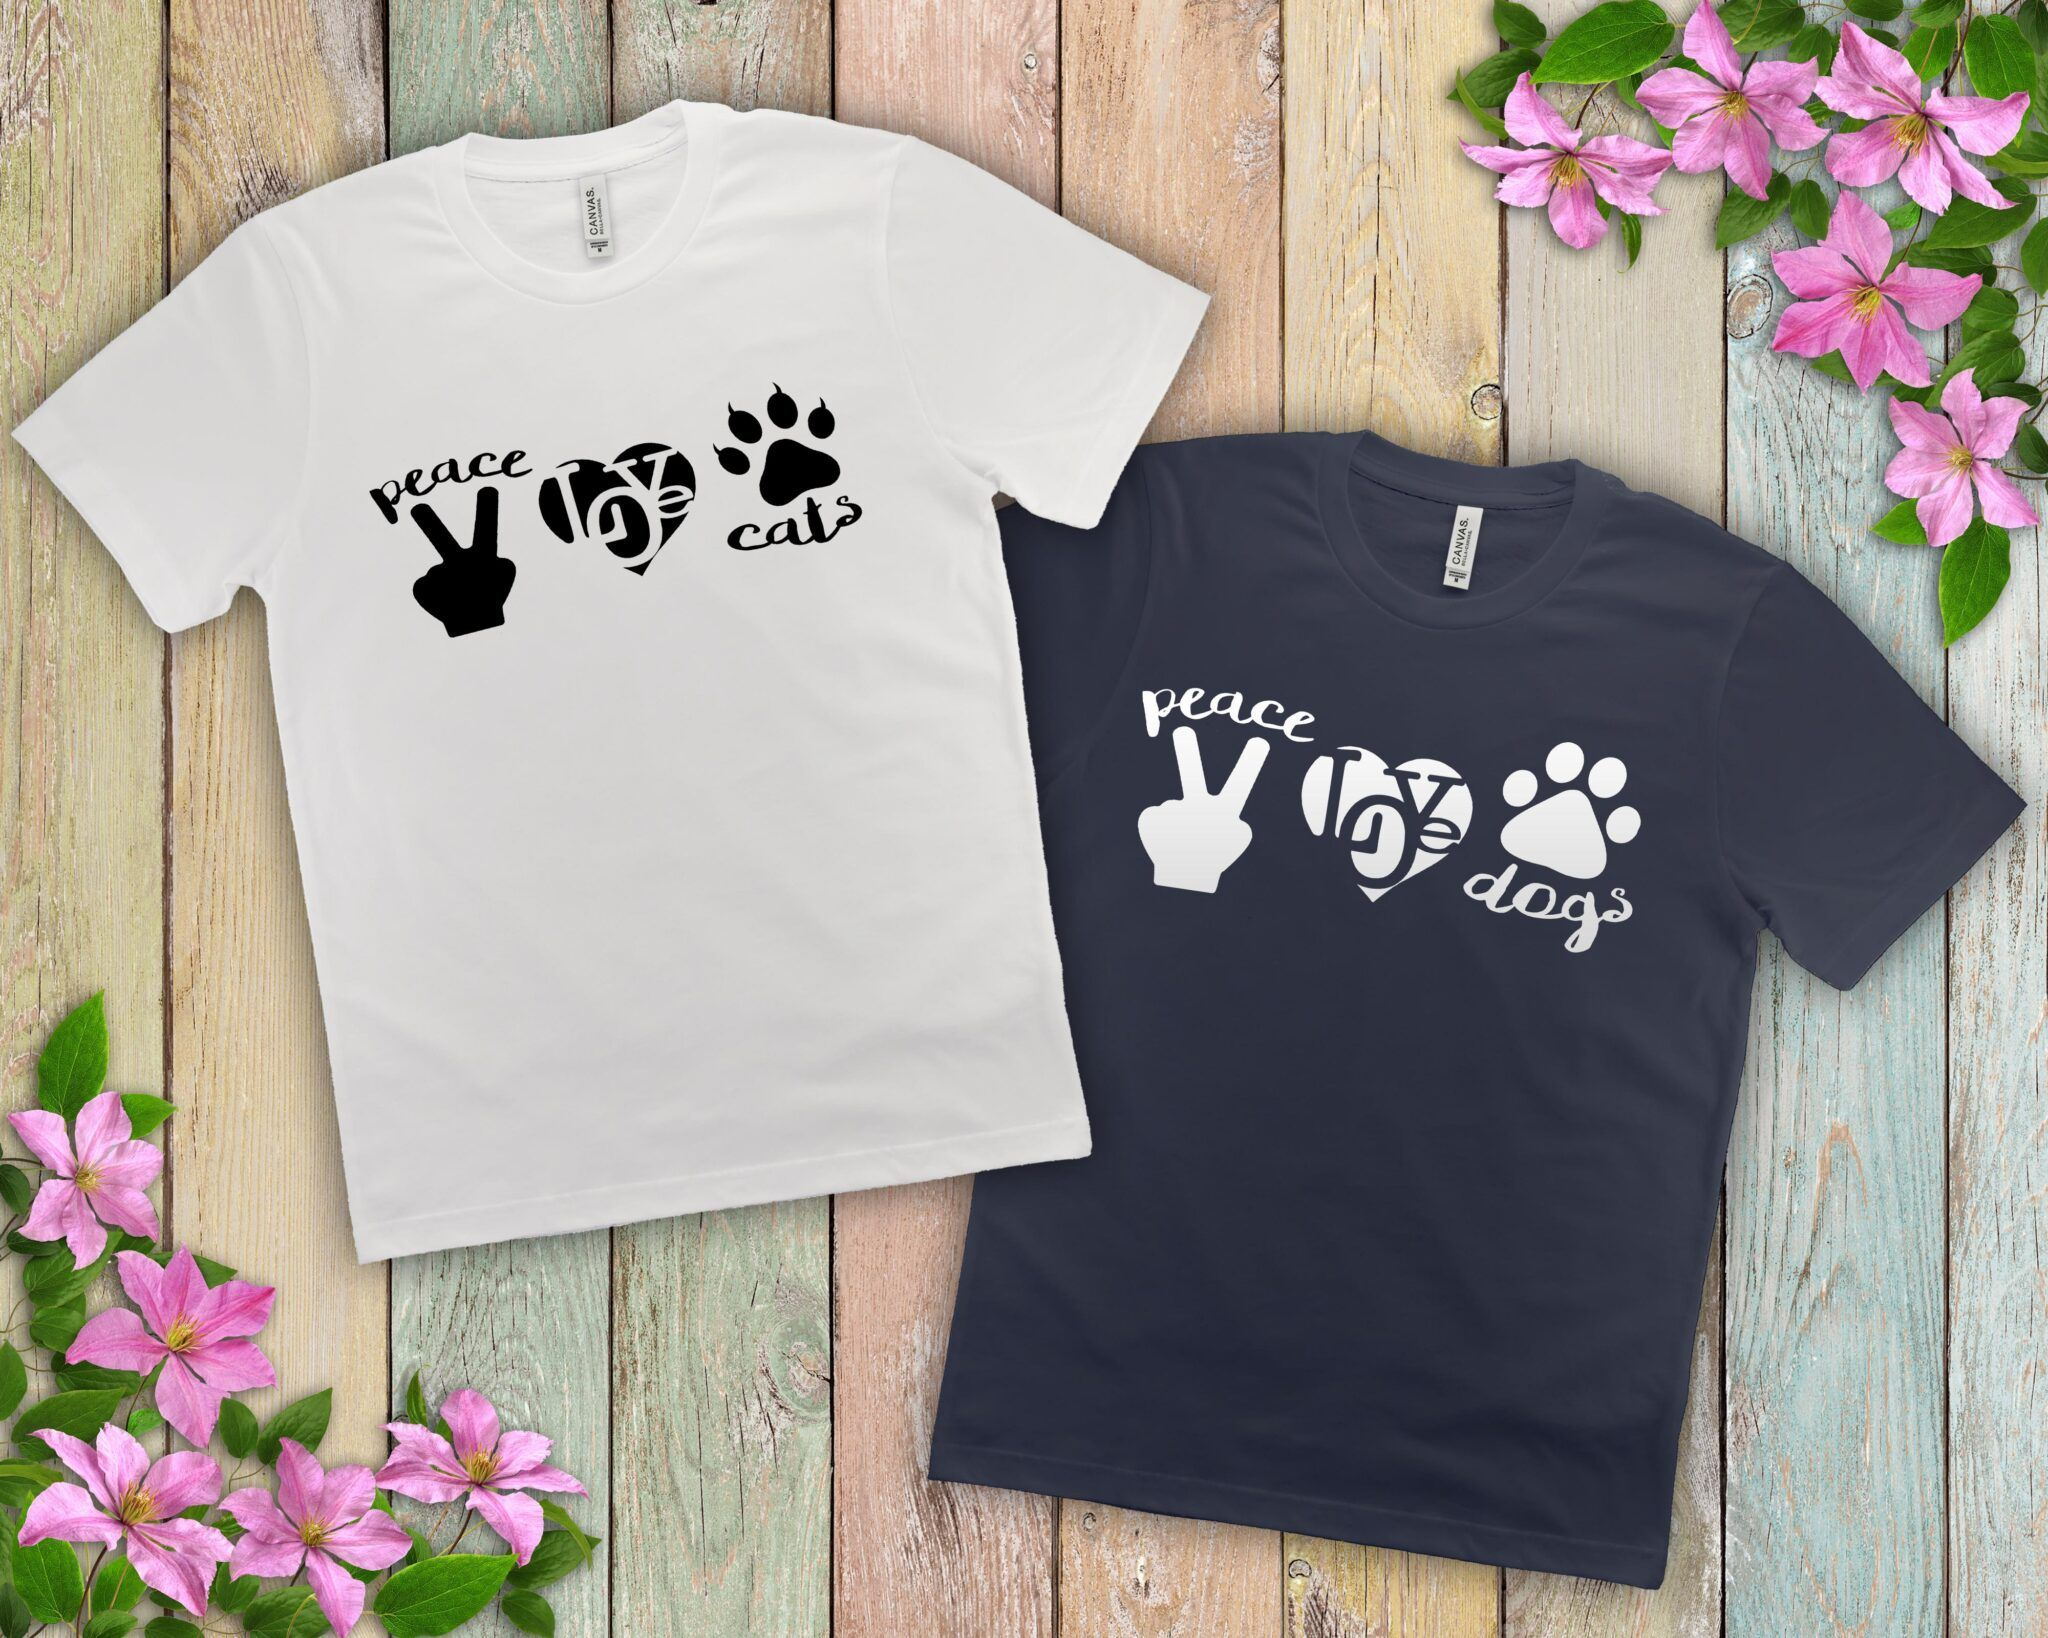 Free Peace Love Dogs Svg File The Crafty Crafter Club In 2020 Peace Love Dogs Peace And Love Svg